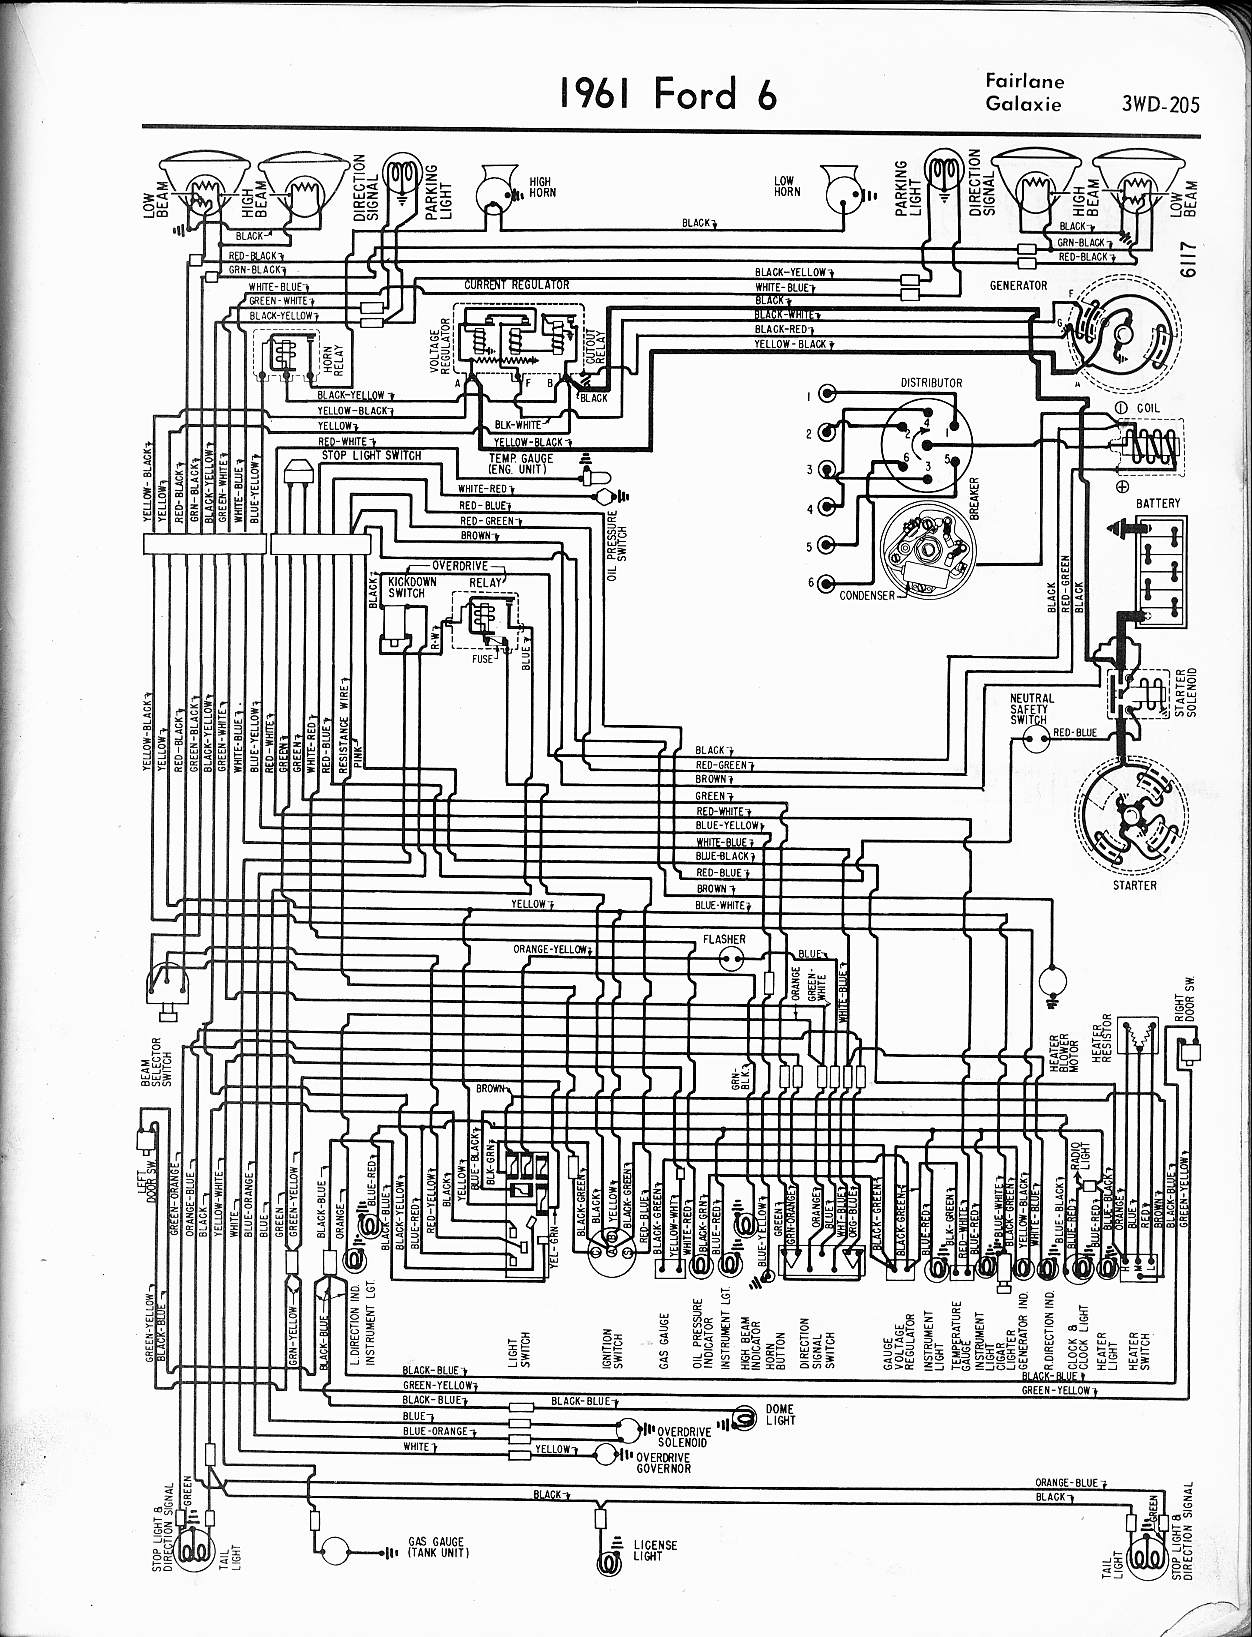 MWire5765 205 57 65 ford wiring diagrams 1968 ford wiring diagrams at arjmand.co